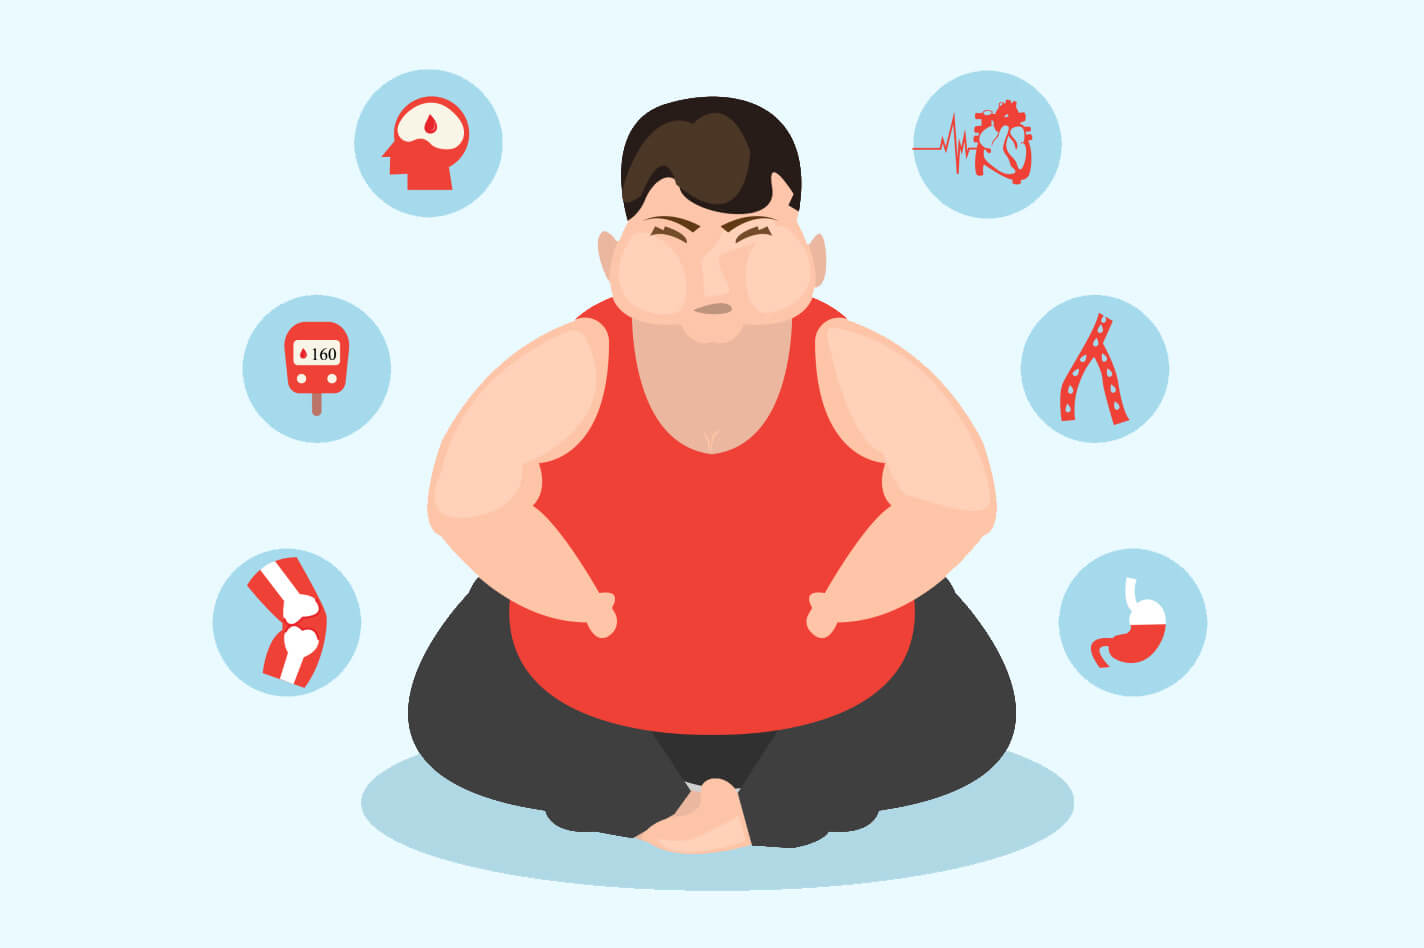 obesity-and-the-sedentary-lifestyle